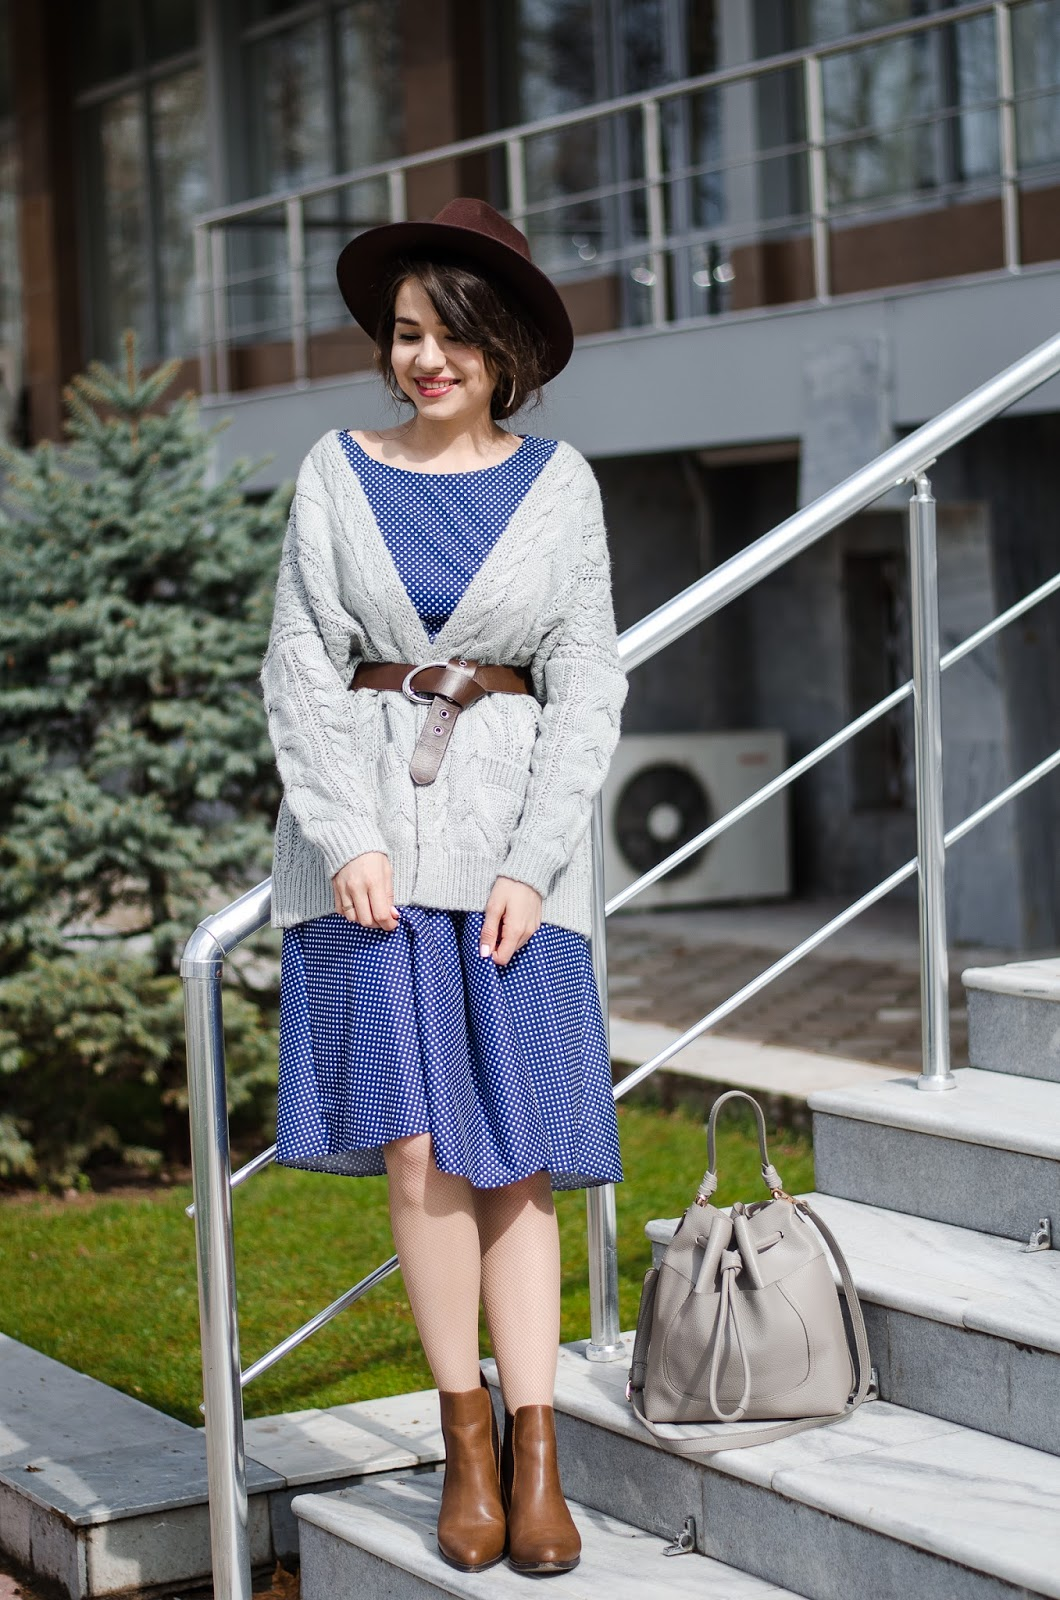 fashion blogger diyorasnotes diyora beta polka dot dress knitted cardigan